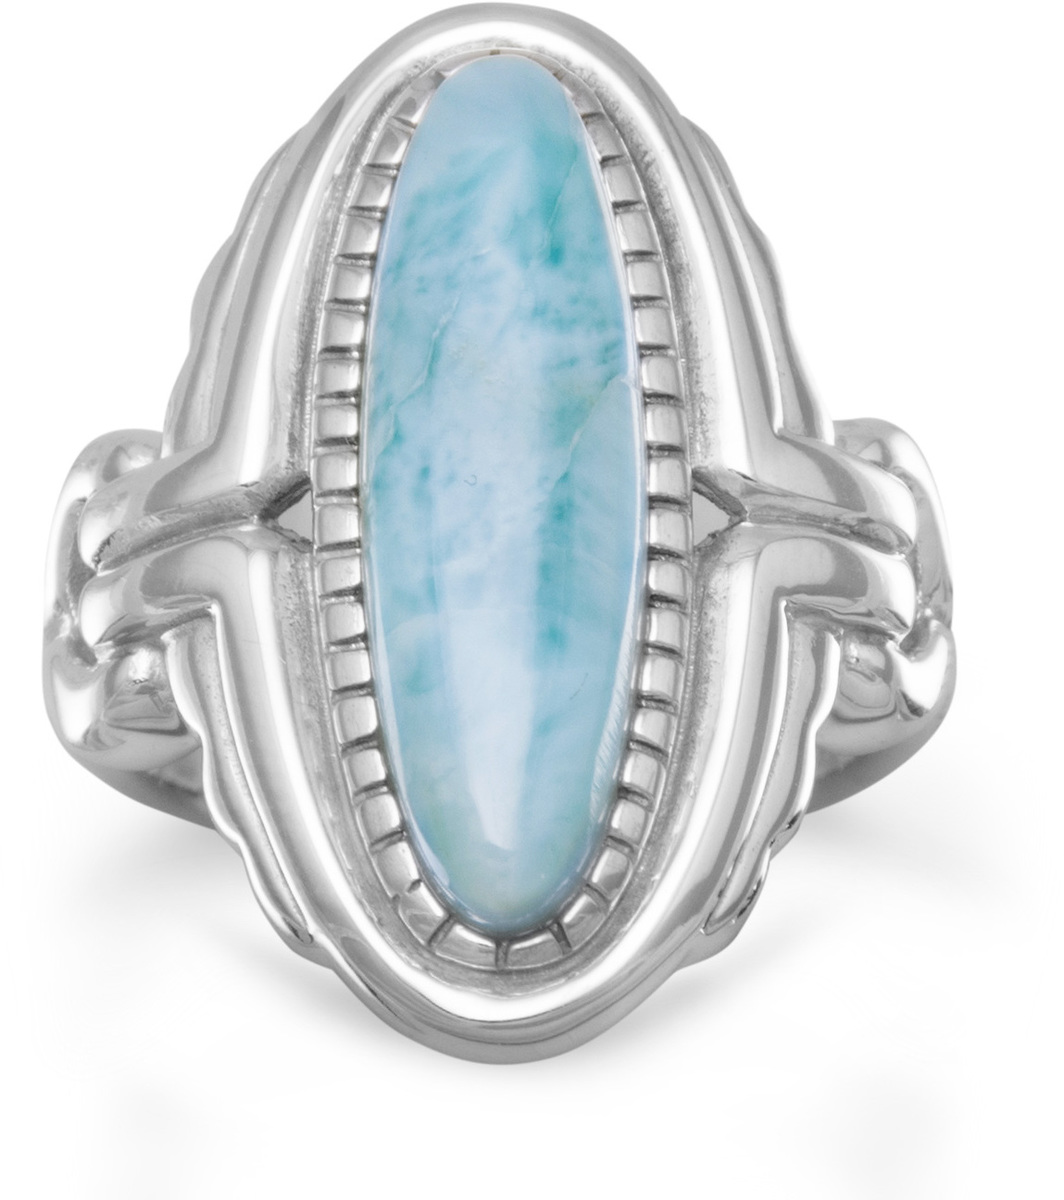 Oval Larimar Ring 925 Sterling Silver